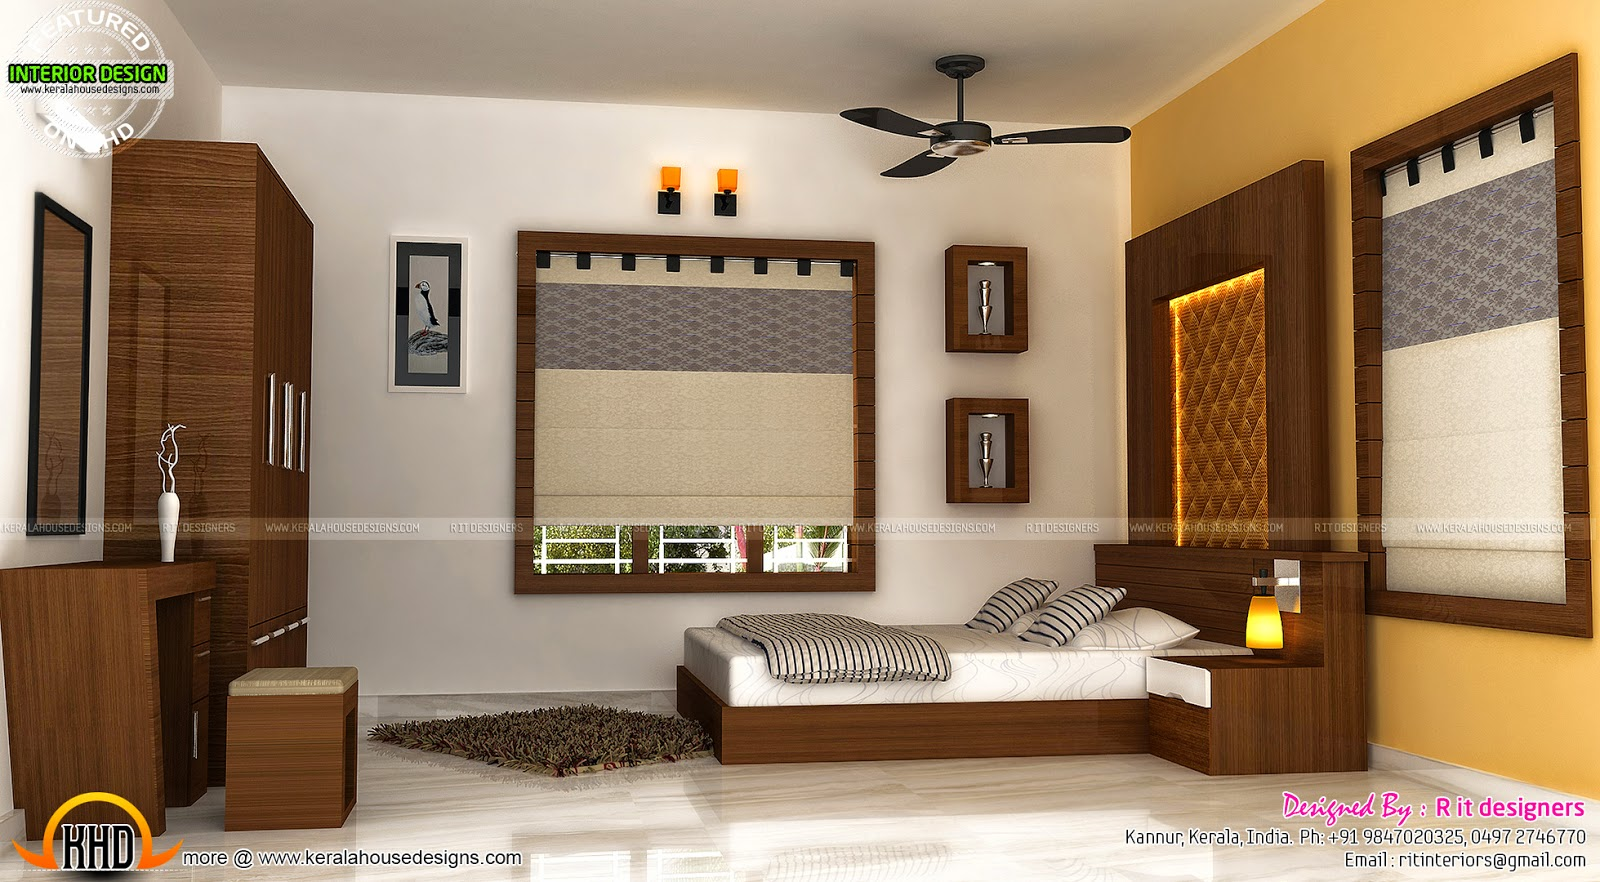 Staircase bedroom dining interiors kerala home design for Home design interior design